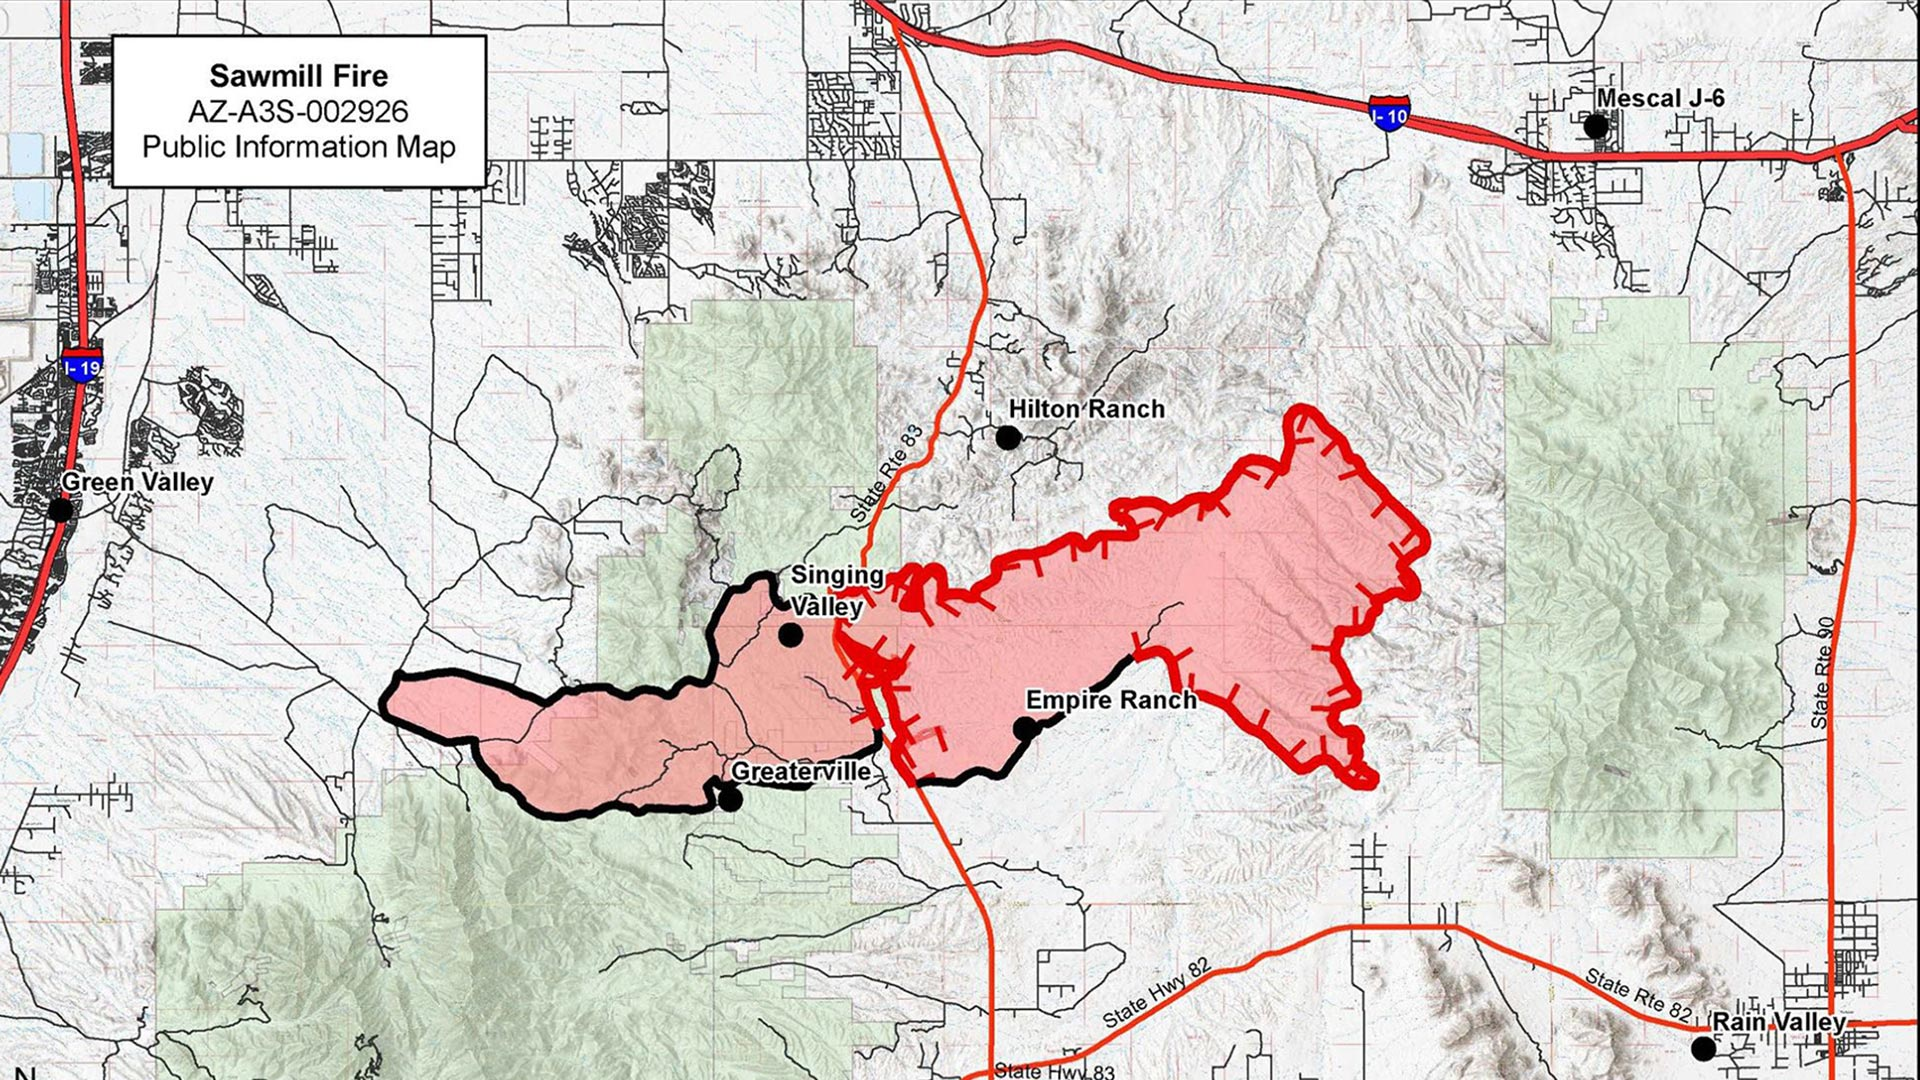 A map of the Sawmill Fire as of April 28. Black borders on the fire area indicate where fire lines are completed.